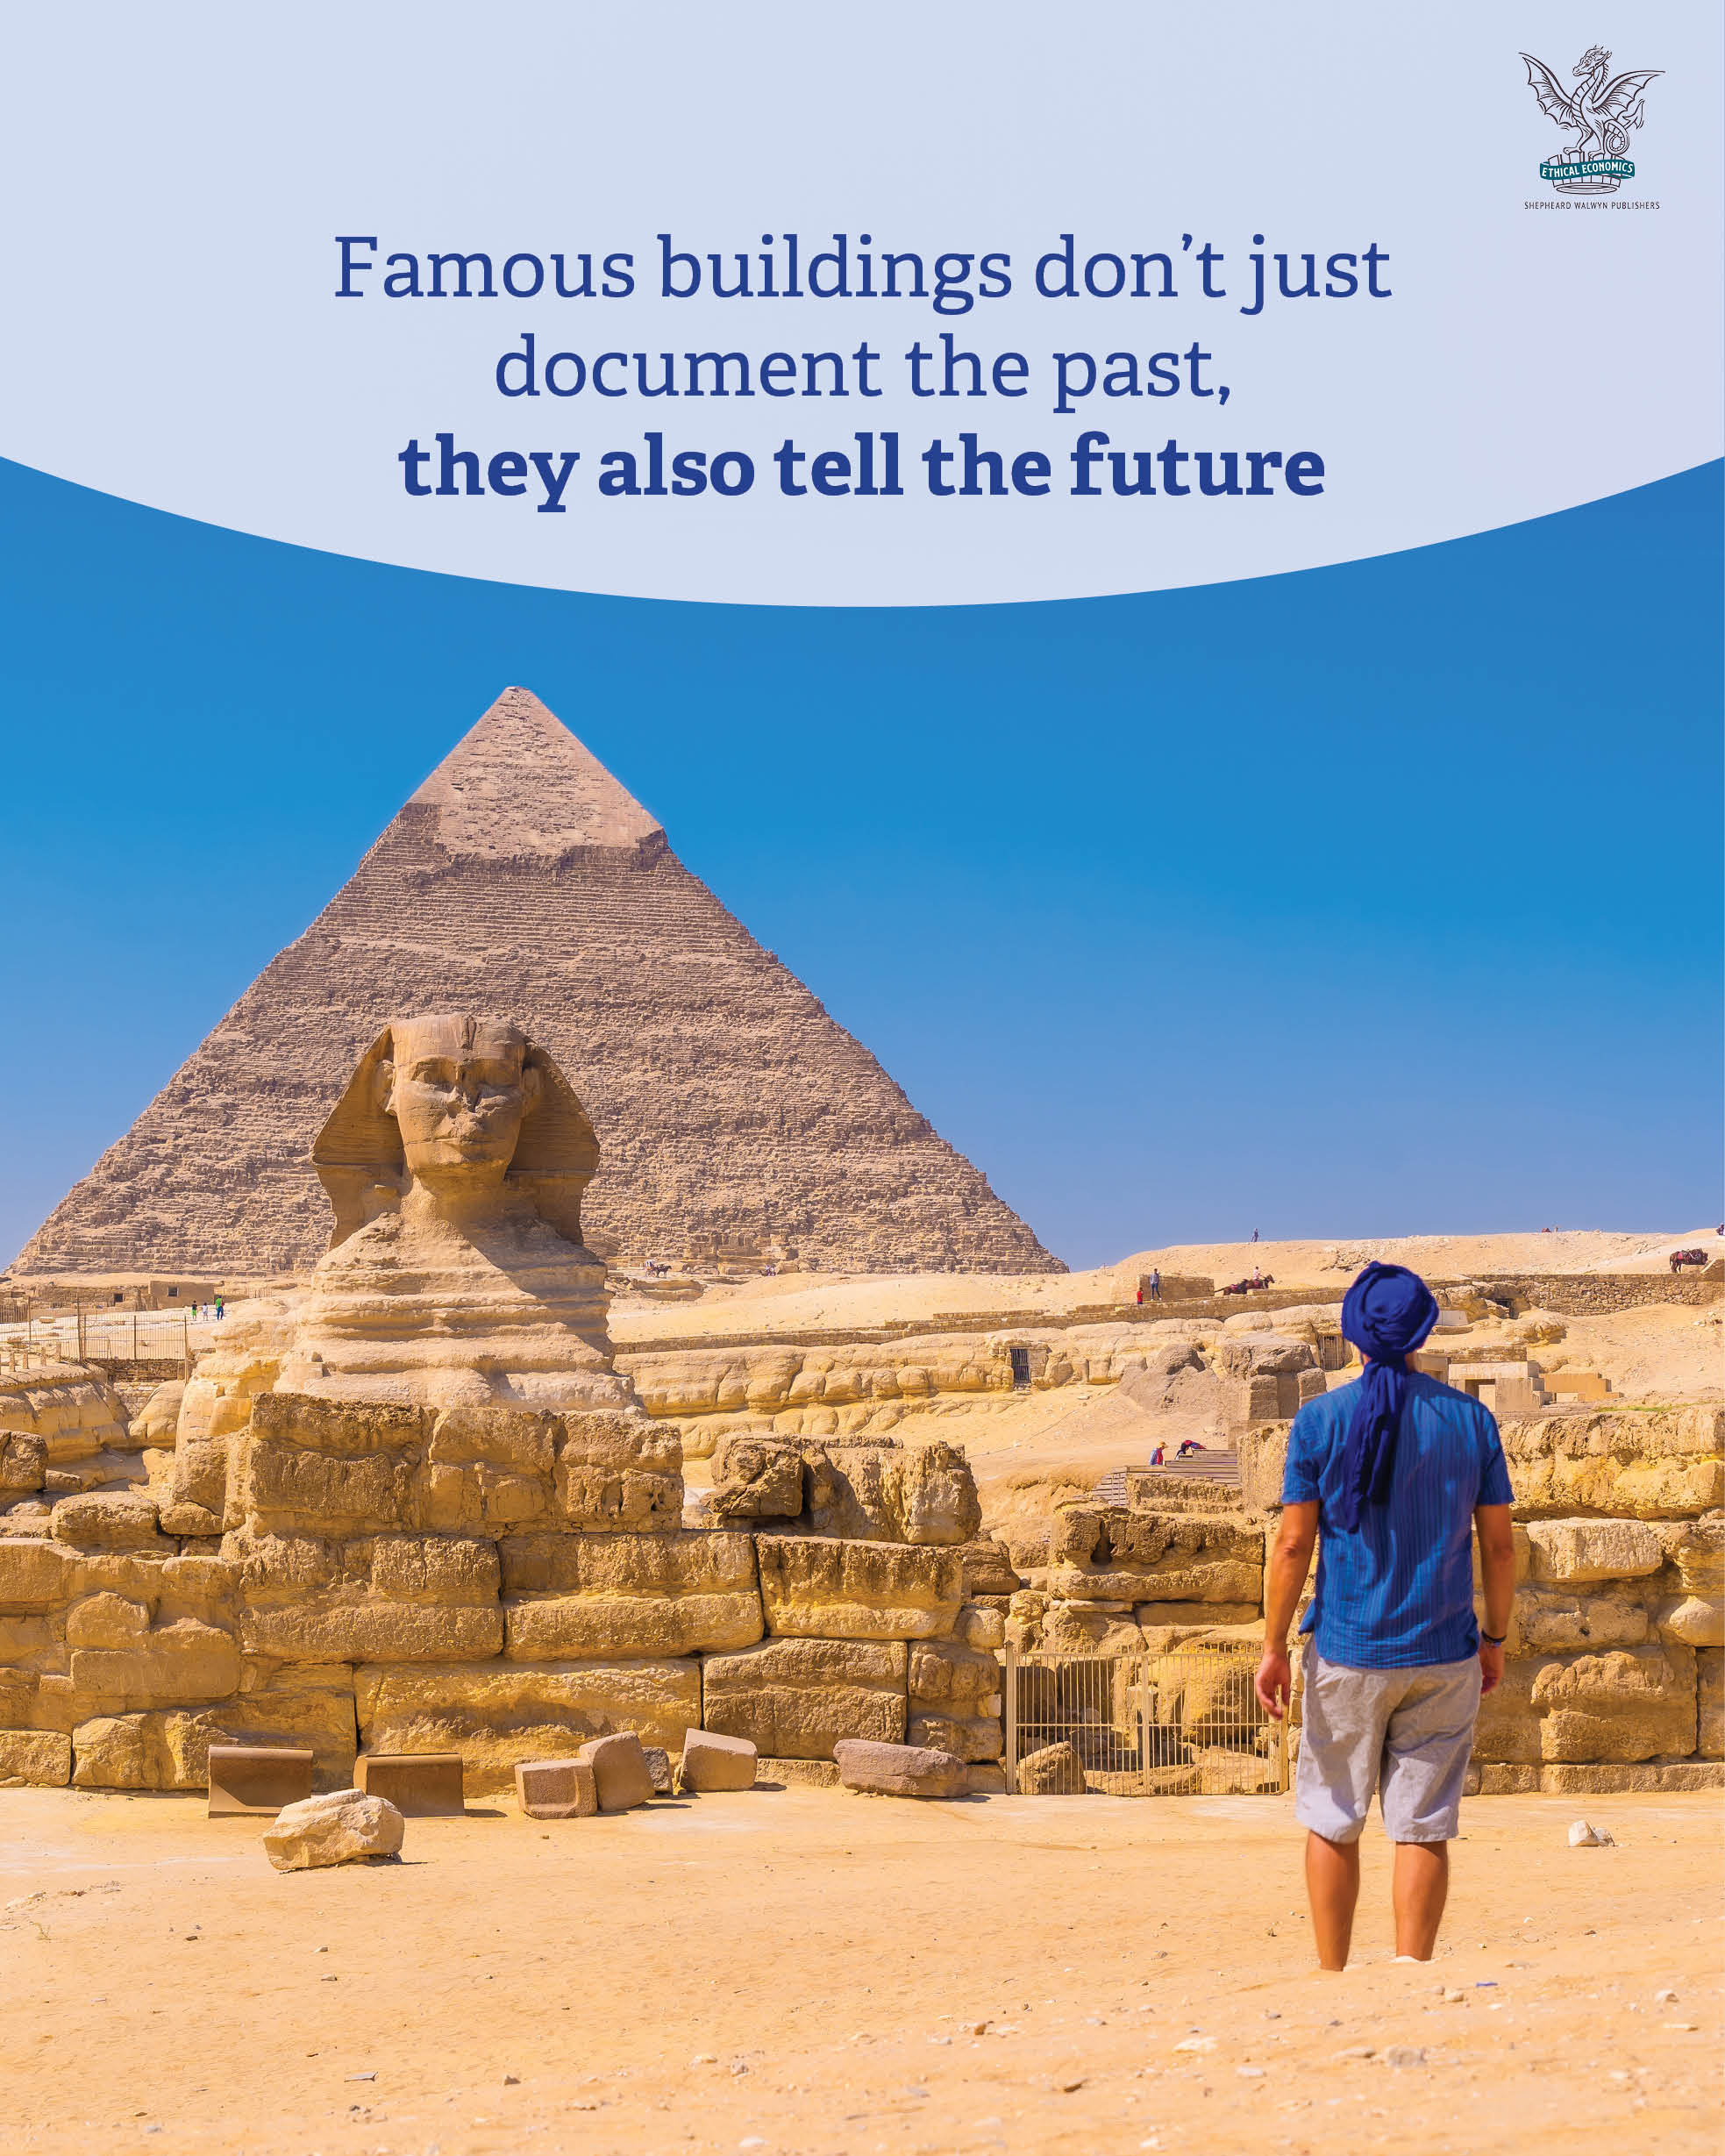 Famous buildings don't just document the past, they also tell the future